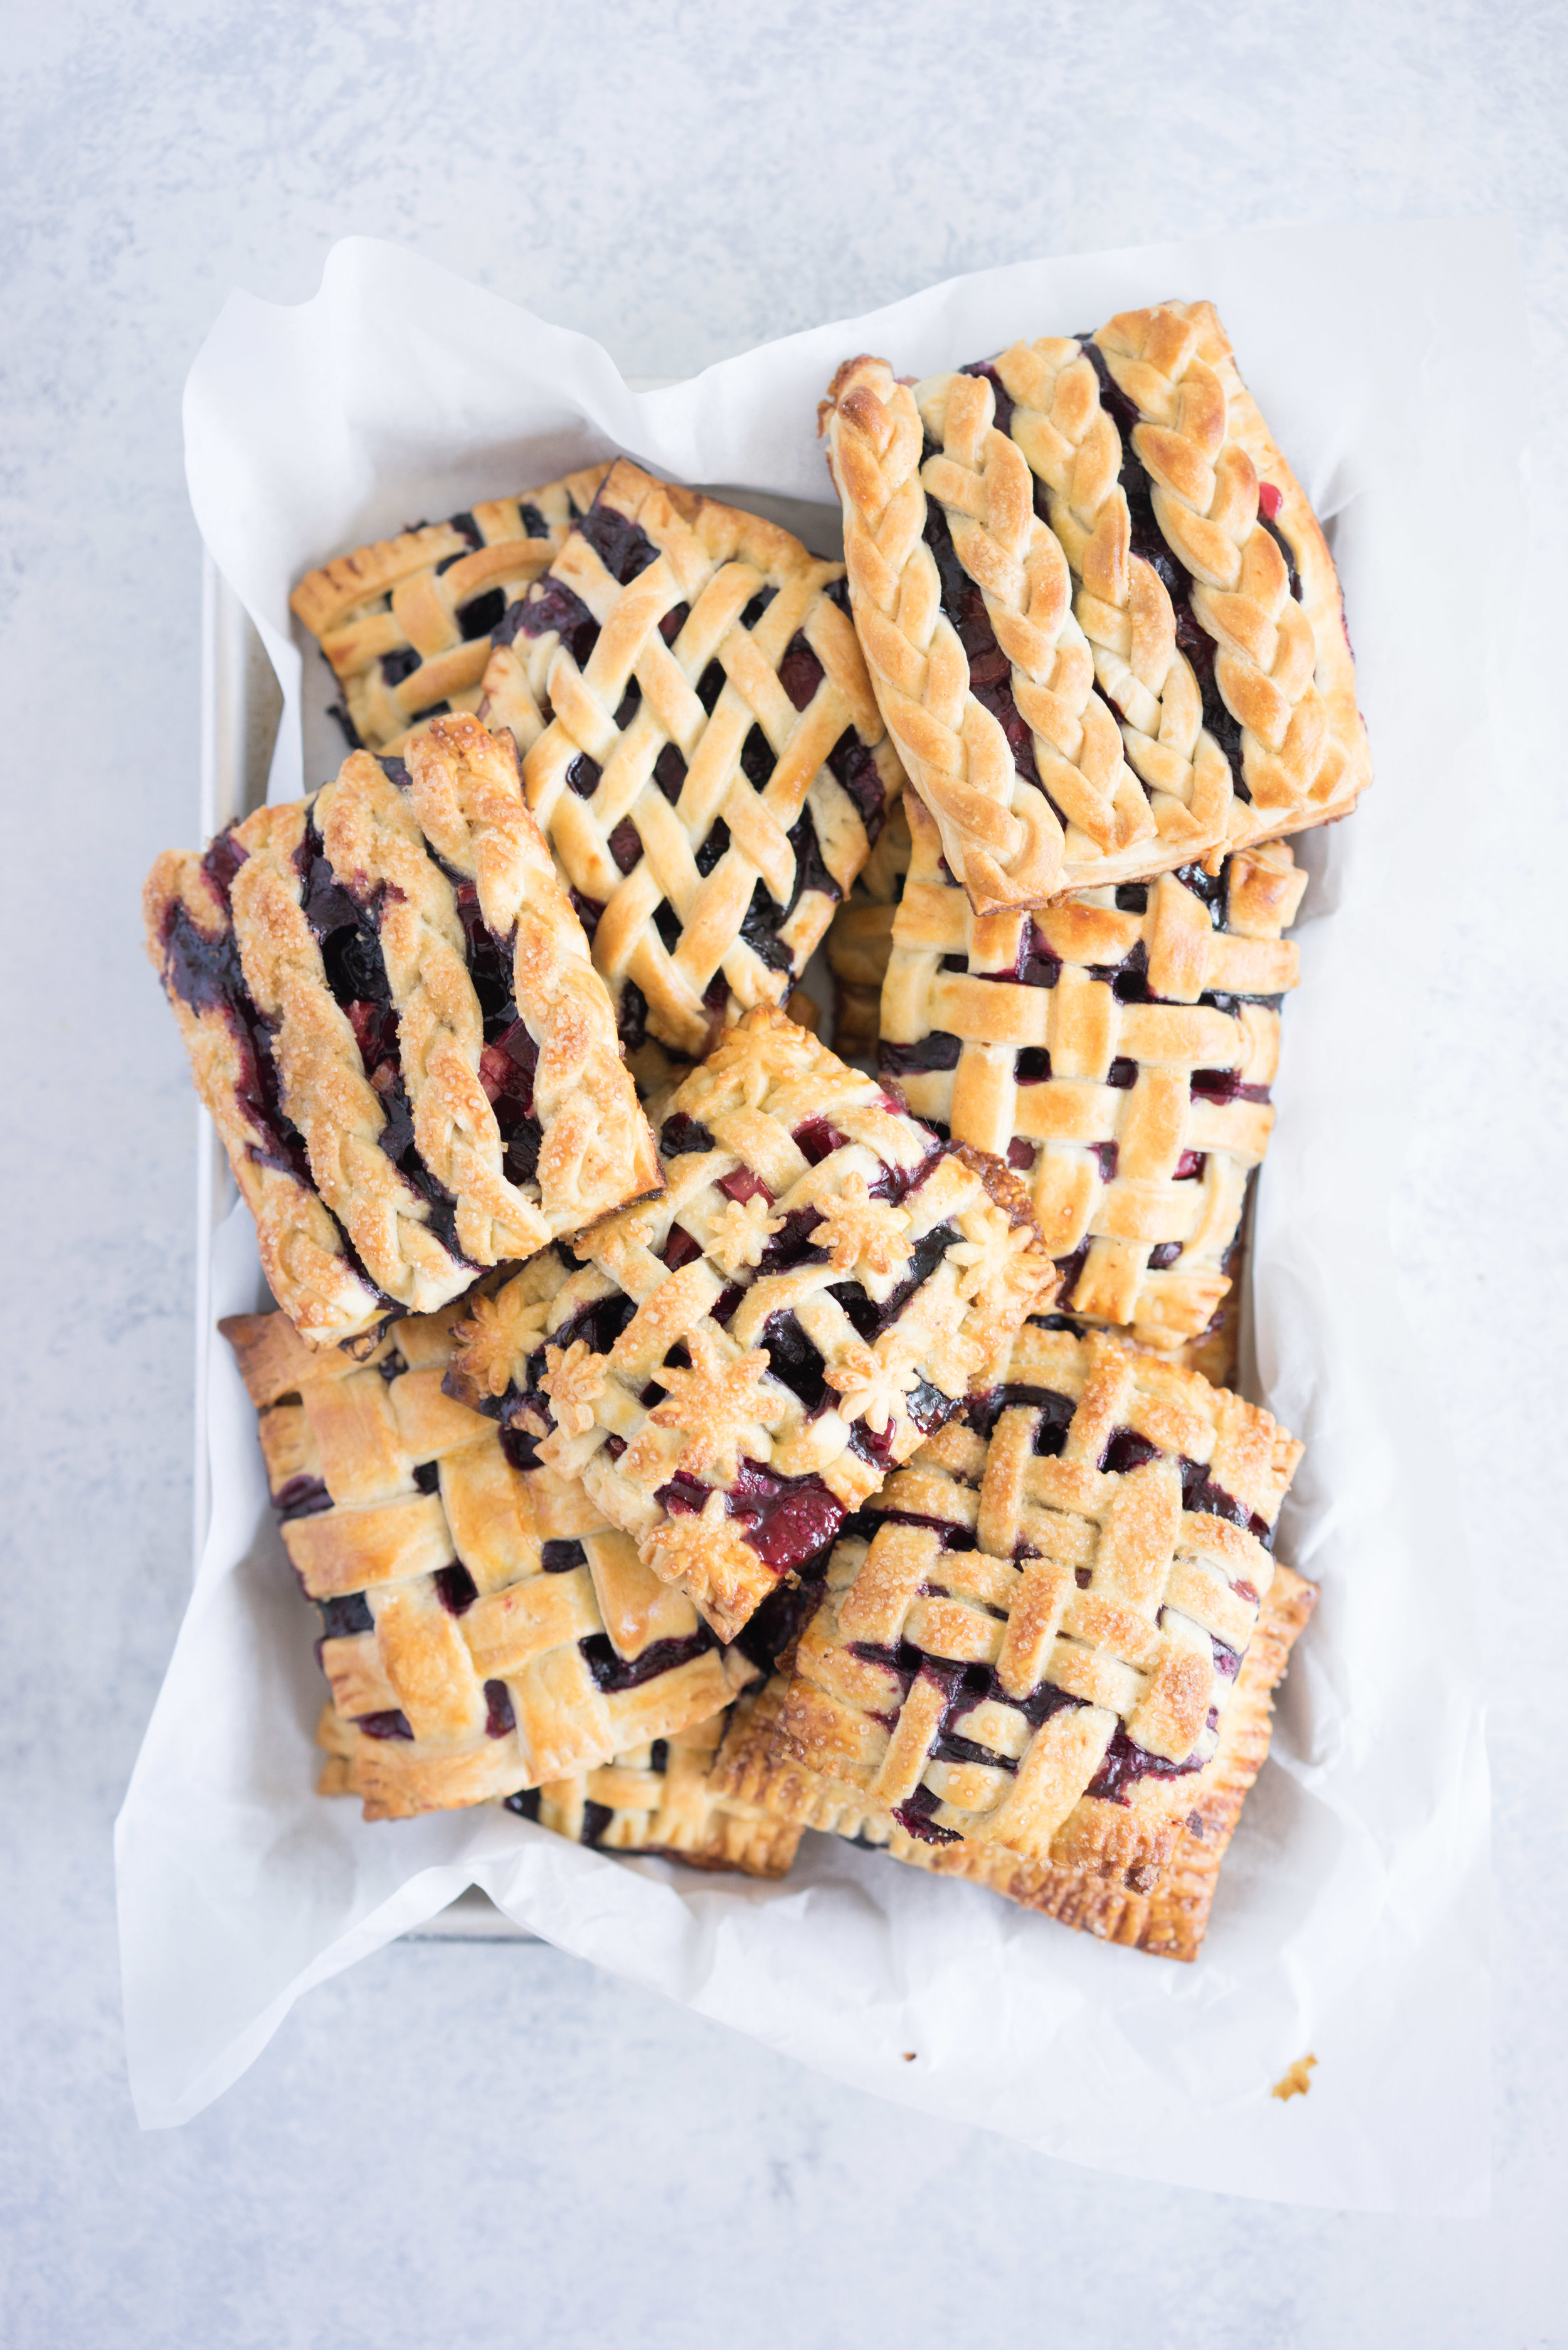 Sour Cherry, Blueberry, and rhubarb hand pies